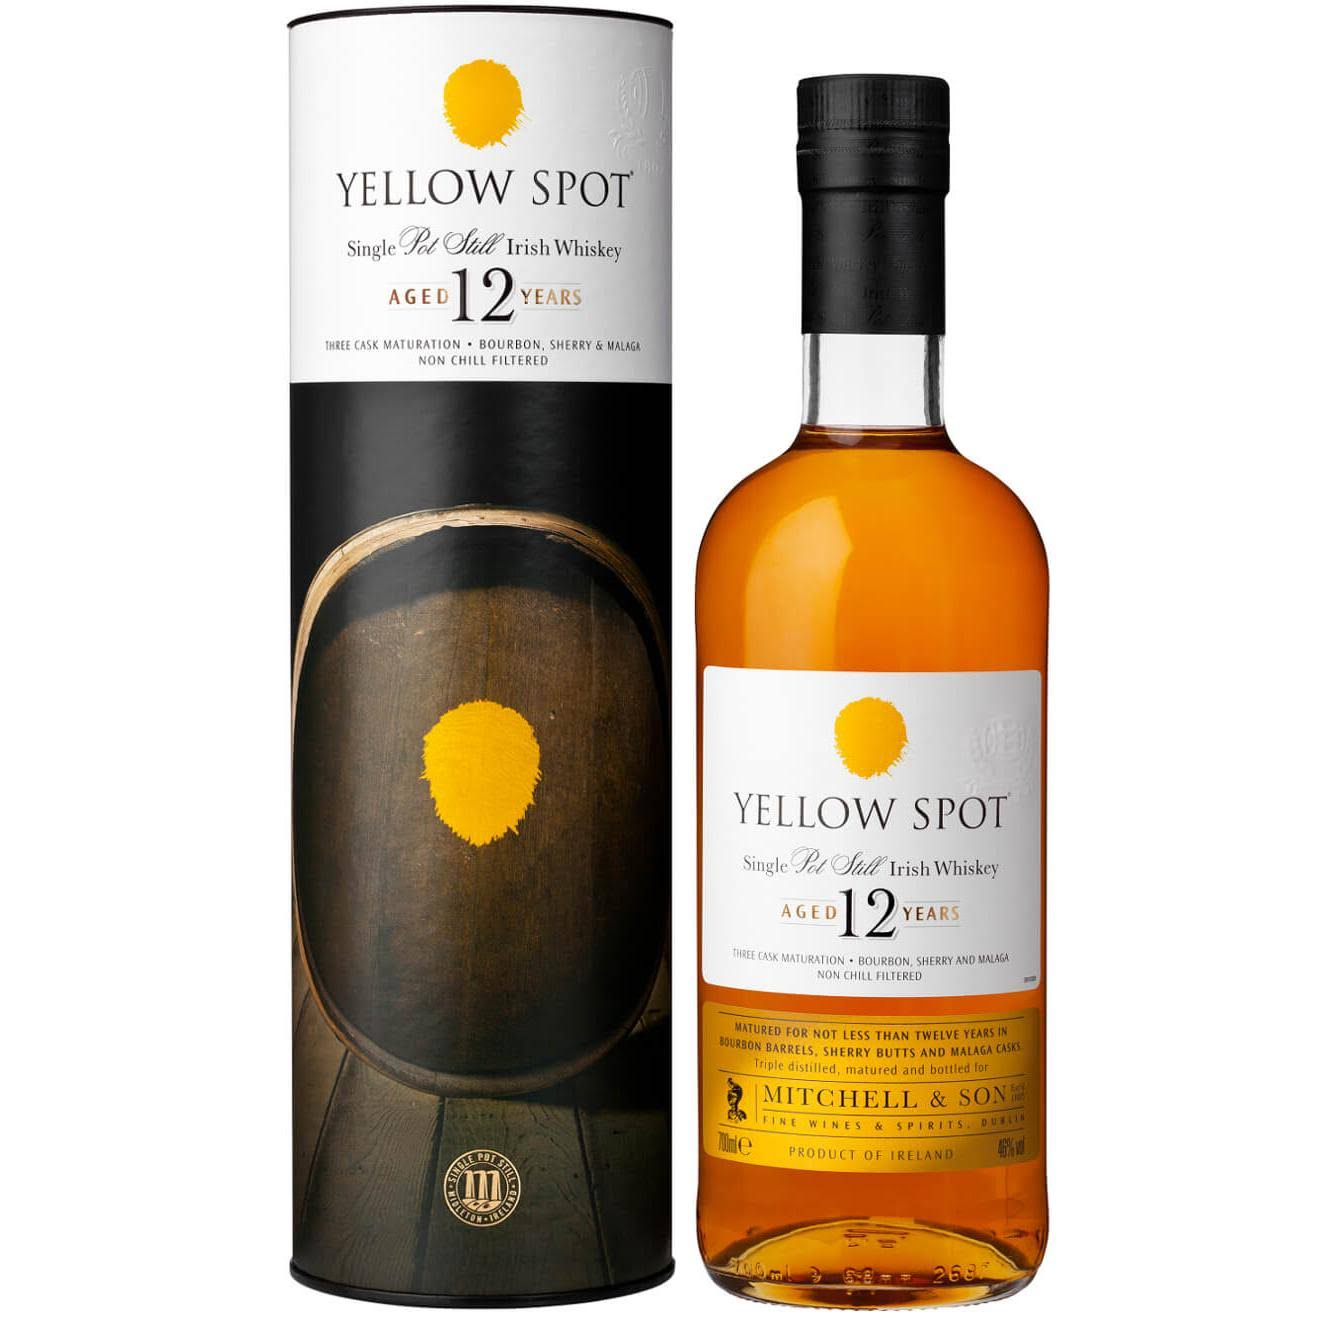 Yellow Spot Single Pot Still Irish Whiskey - Aged 12 Years, 700 ml